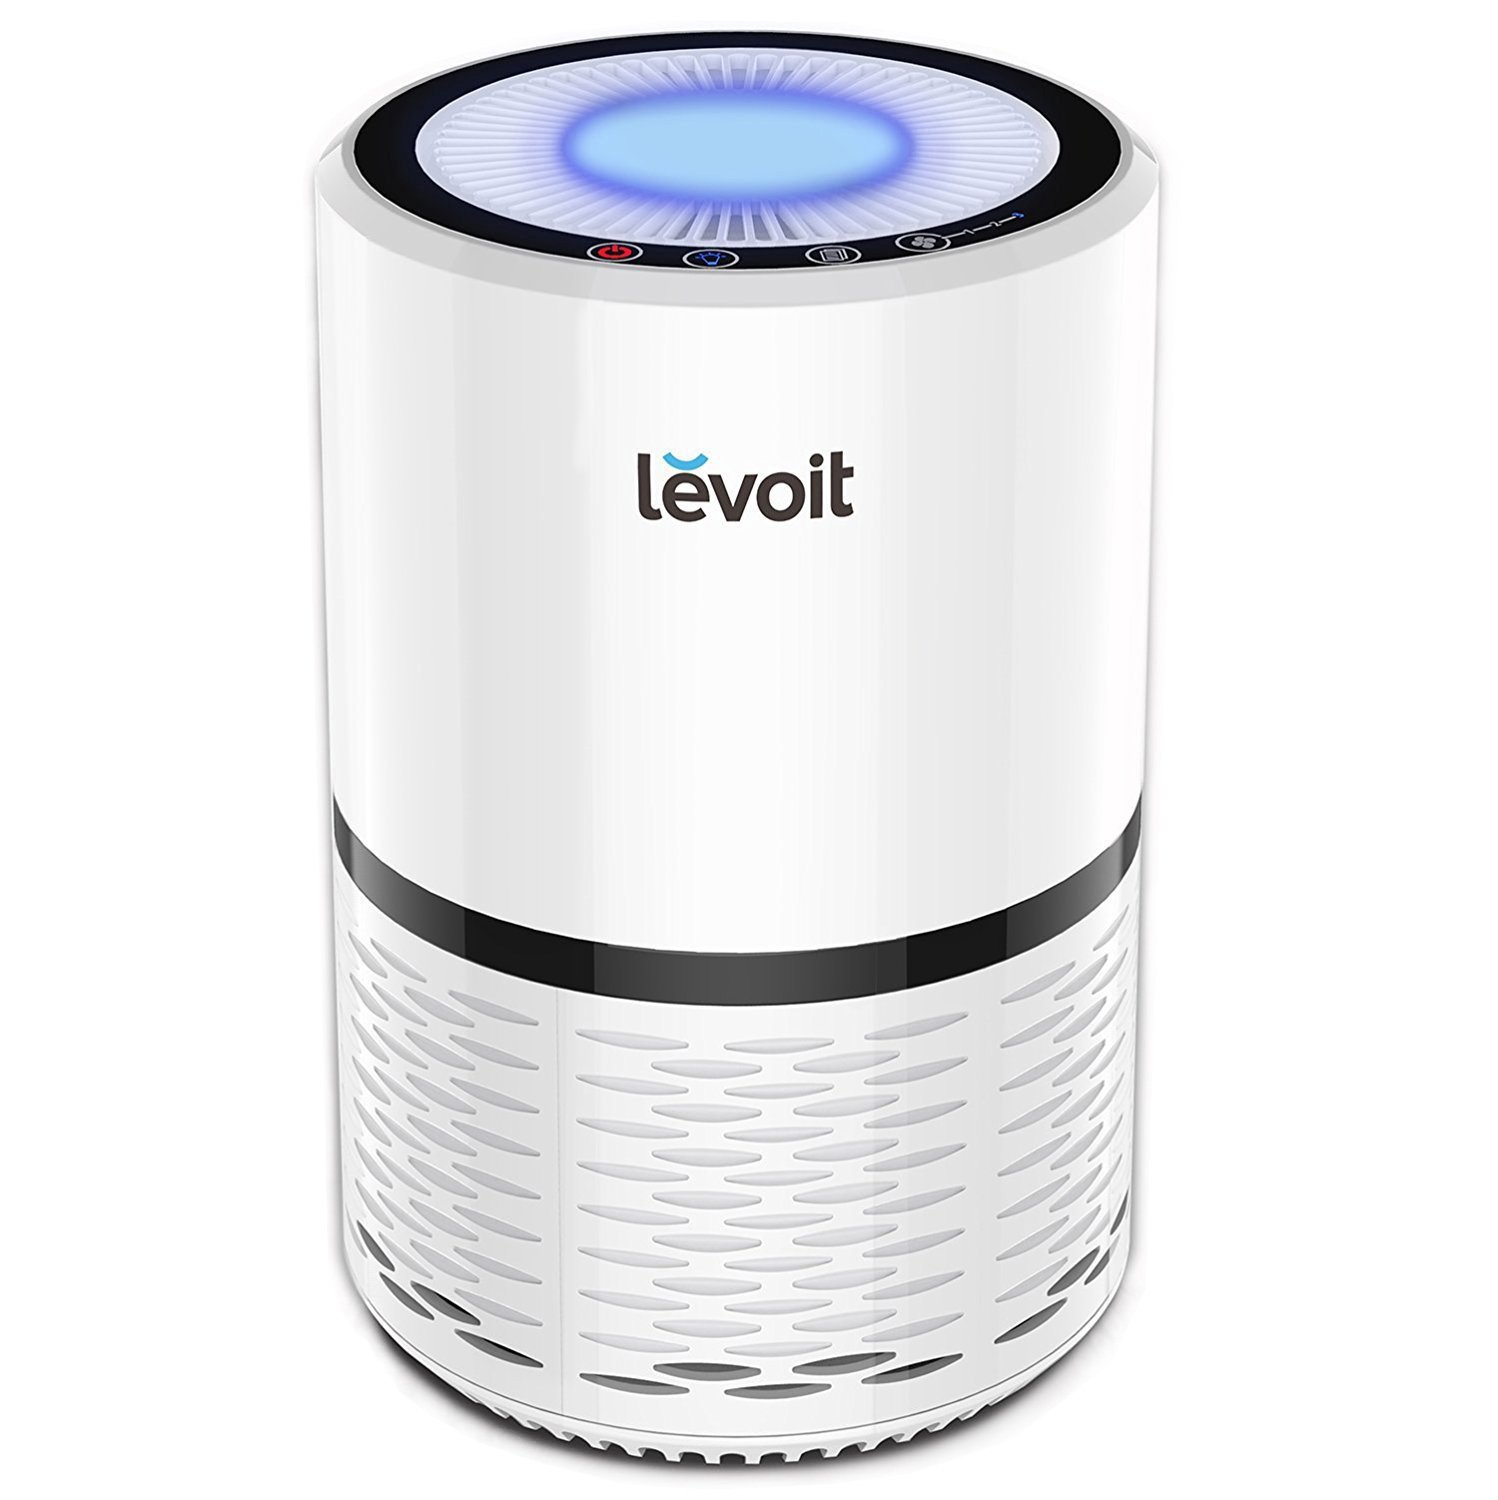 LEVOIT Air Purifier with True HEPA Filter Review